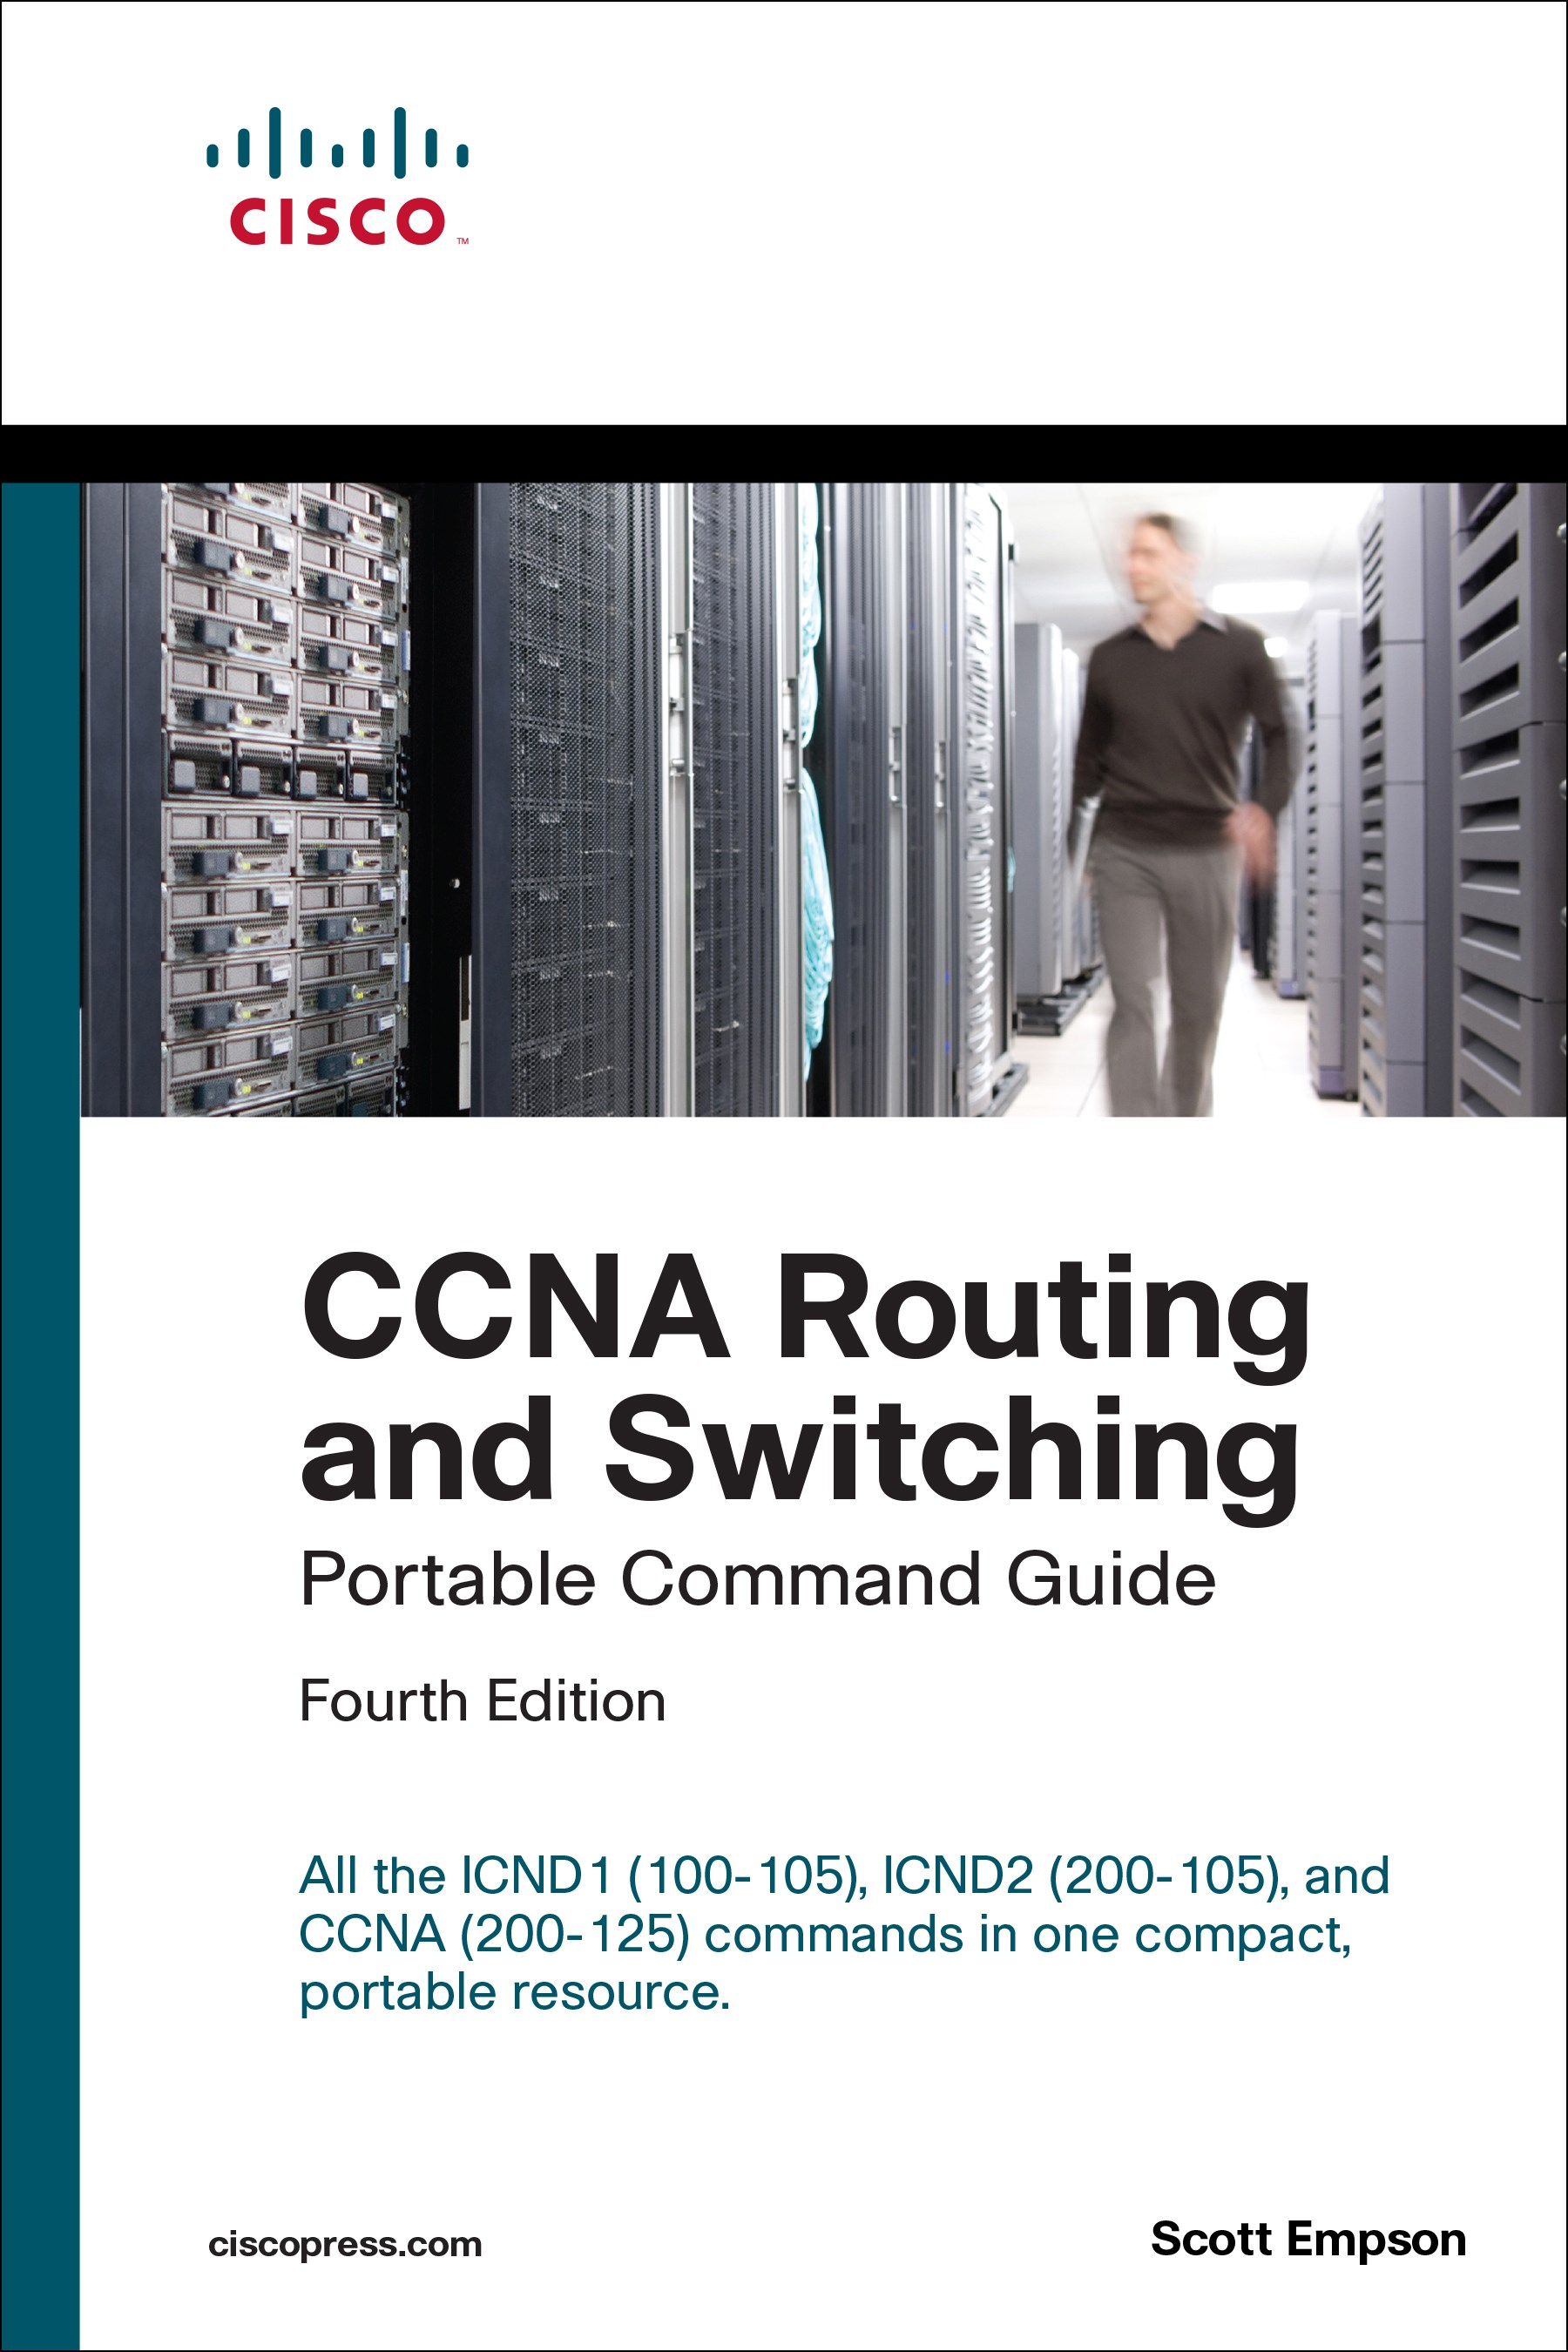 CCNA Routing and Switching Portable Command Guide (ICND1 100-105